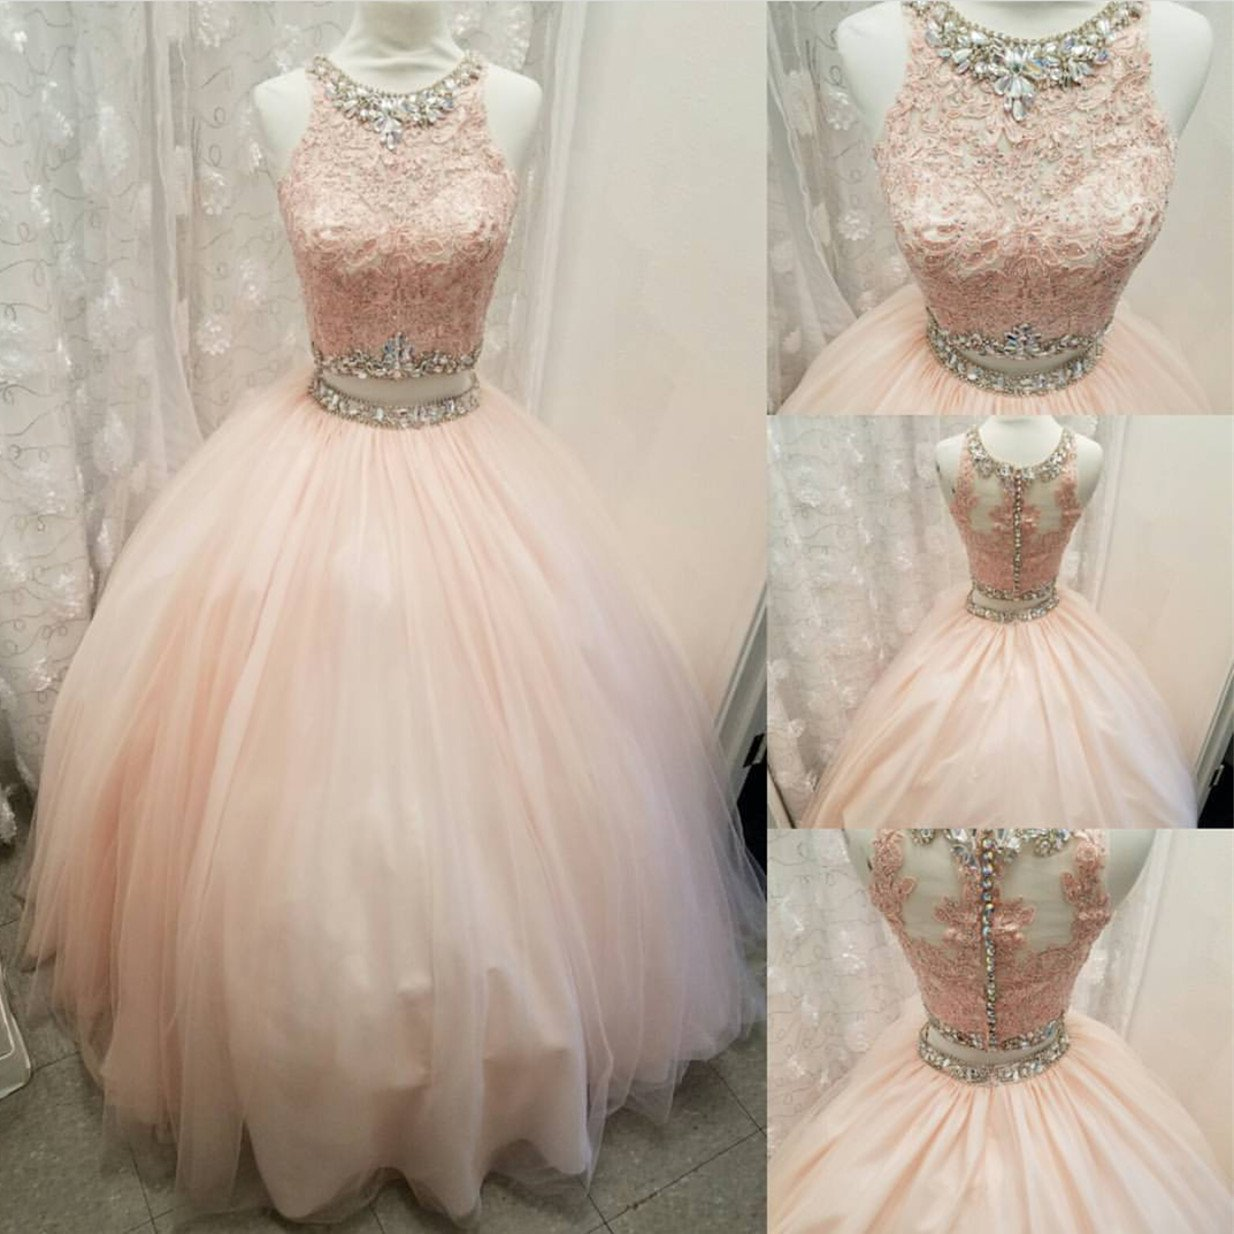 Cute Light Pink Tulle Lace Prom Dress,2 Pieces Sleeveless Beaded Ball  Gown,Round Neck Rhinestone Crystals Party Evening Dress,Sweet 16 Dress